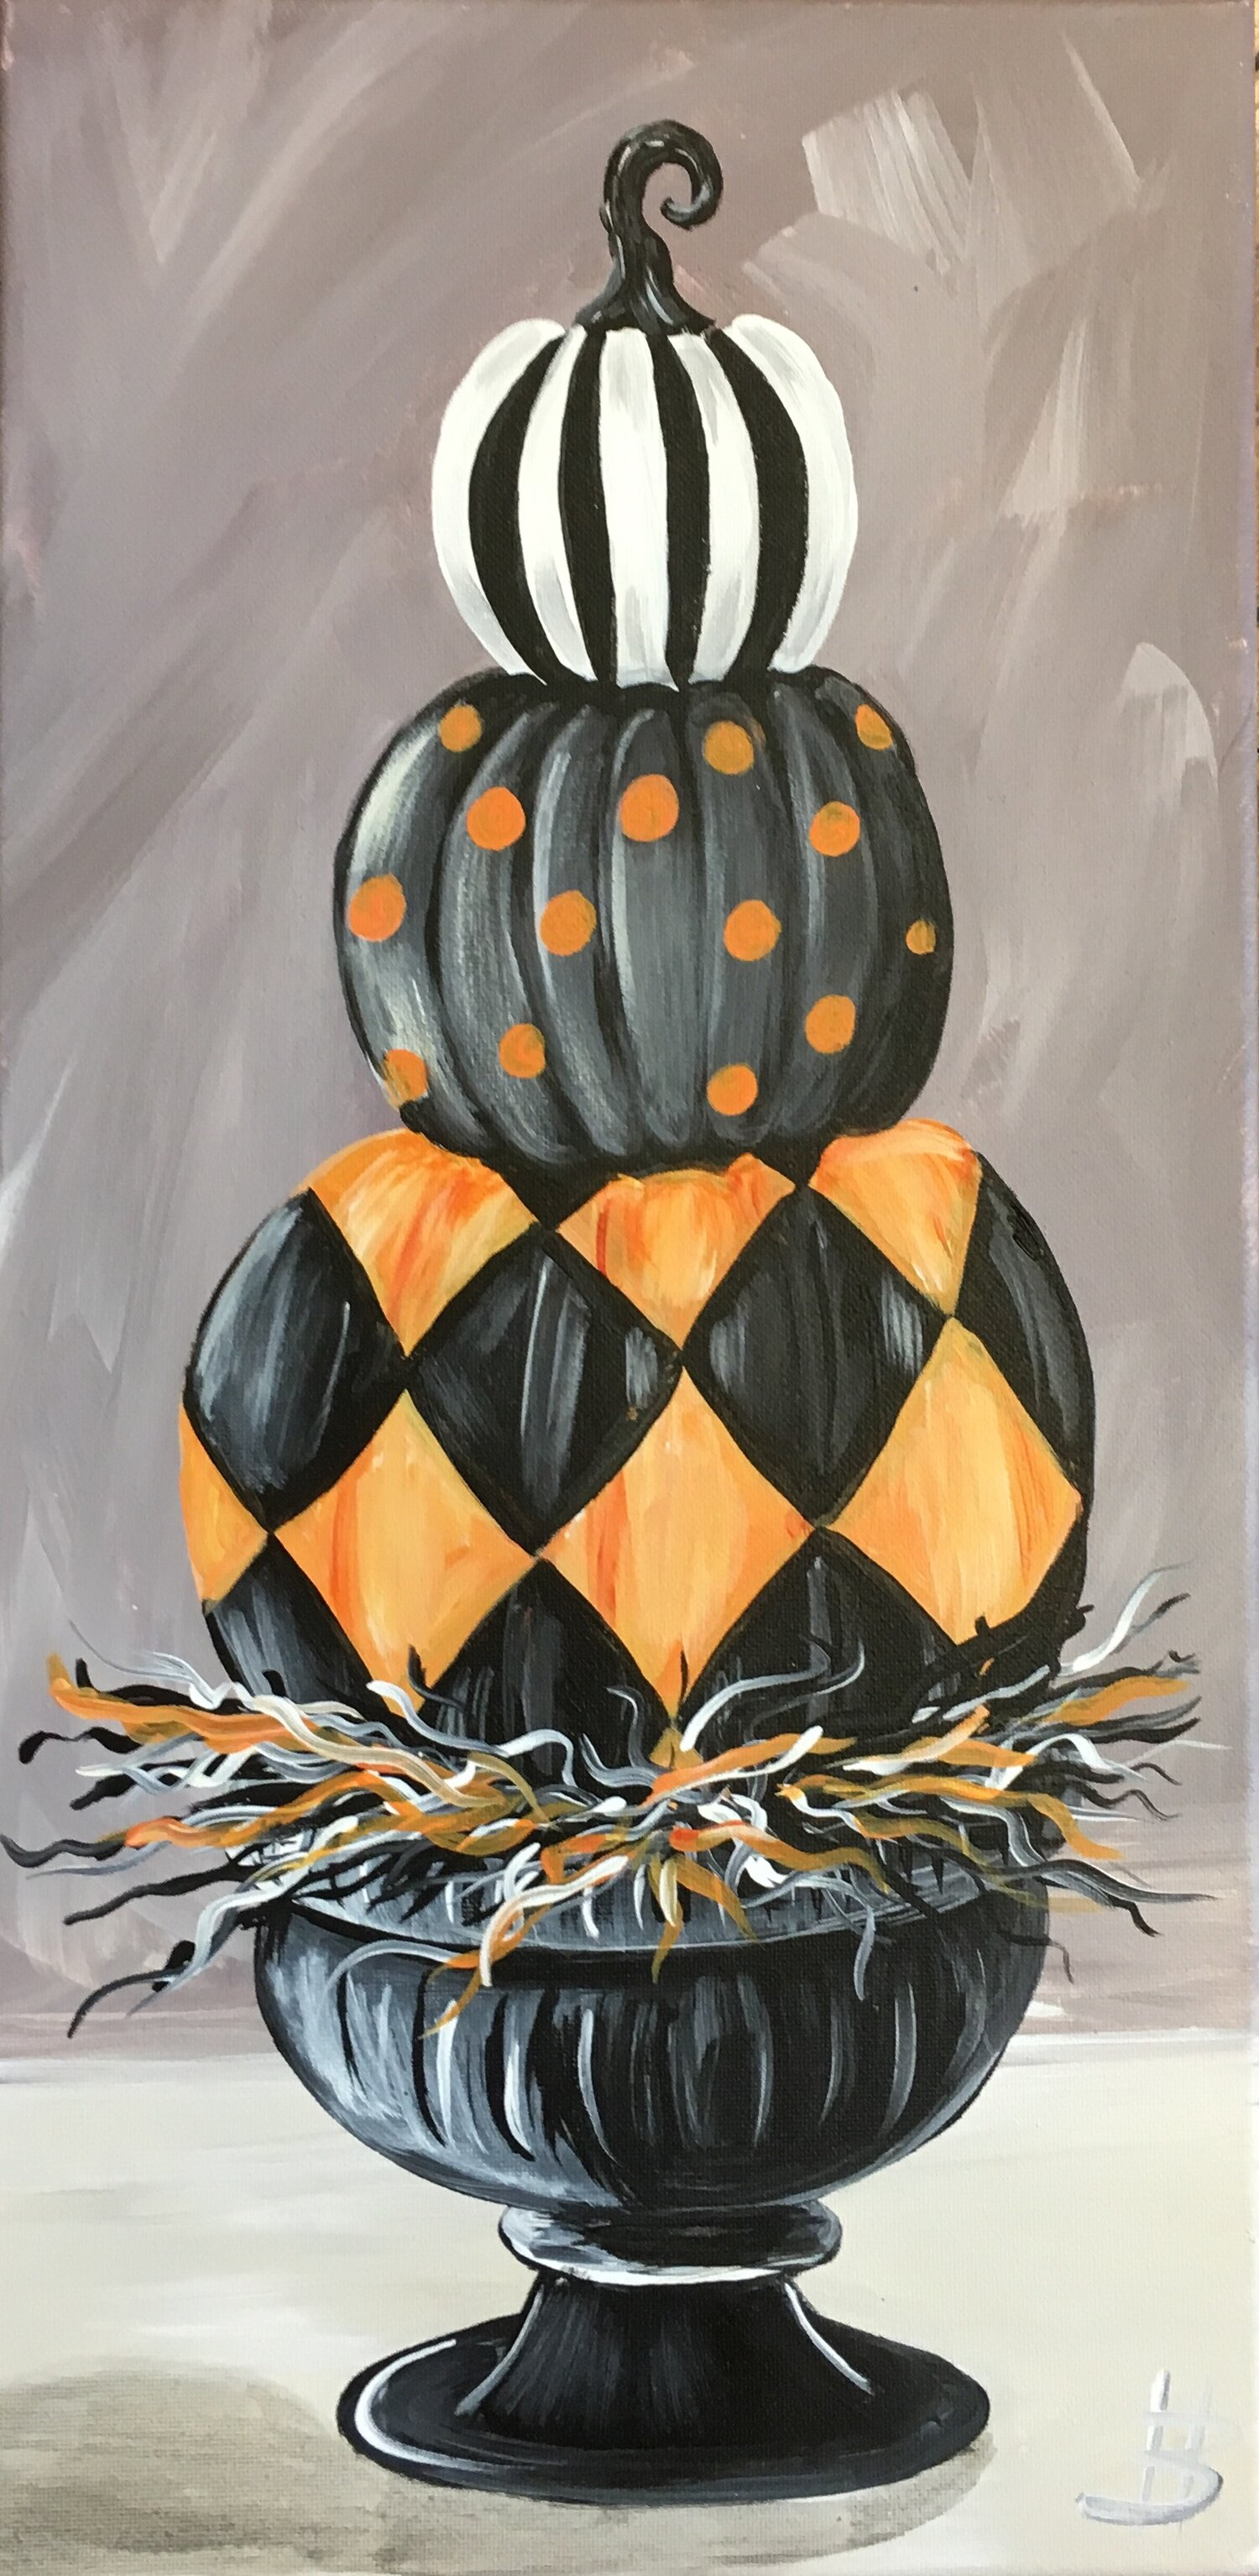 Stacked Pumpkins for Fall.jpg